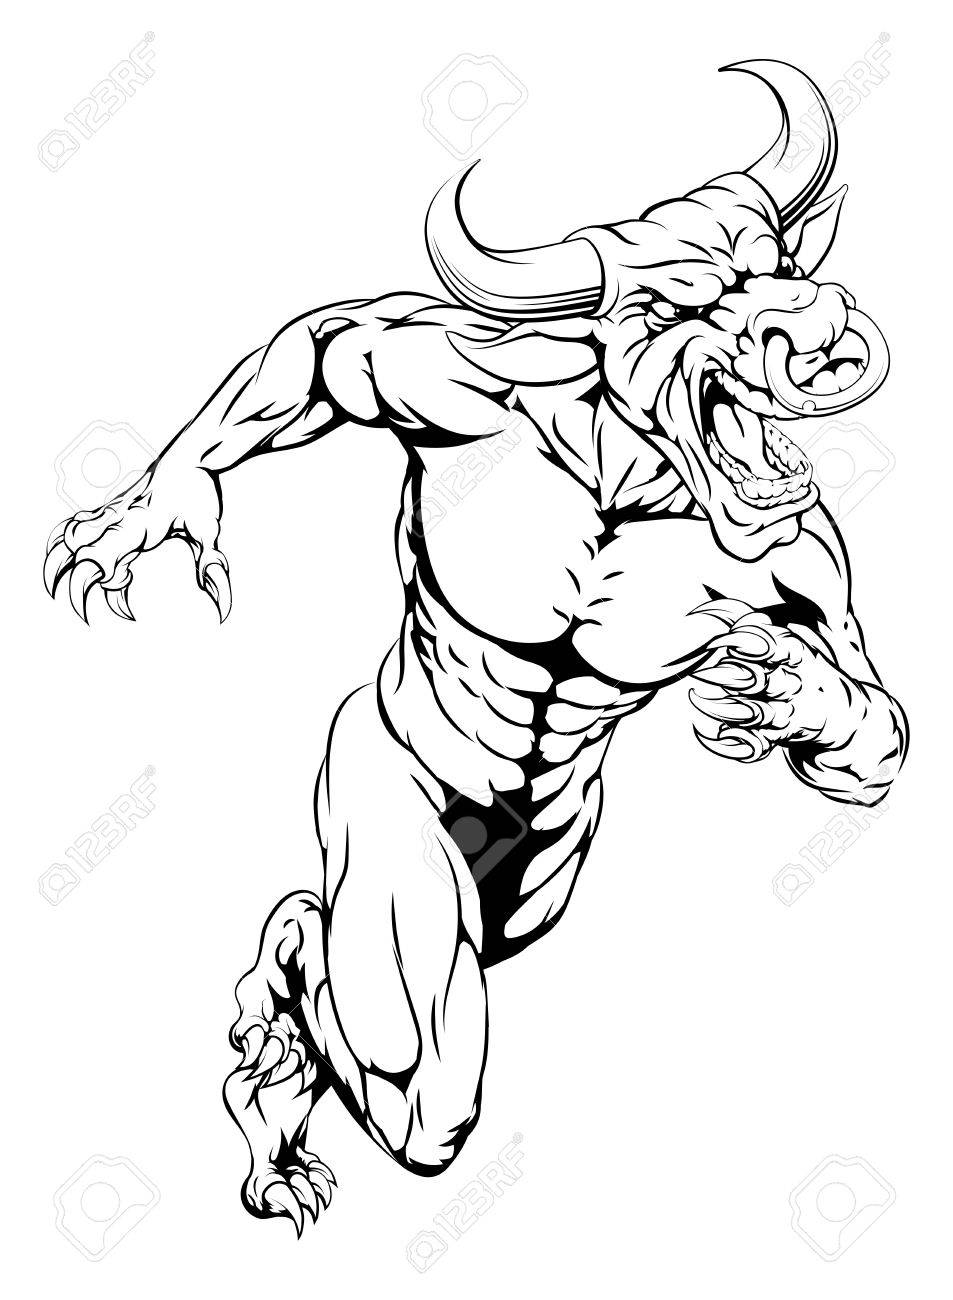 953x1300 An Aggressive Muscular Bull Sports Mascot Character Charging